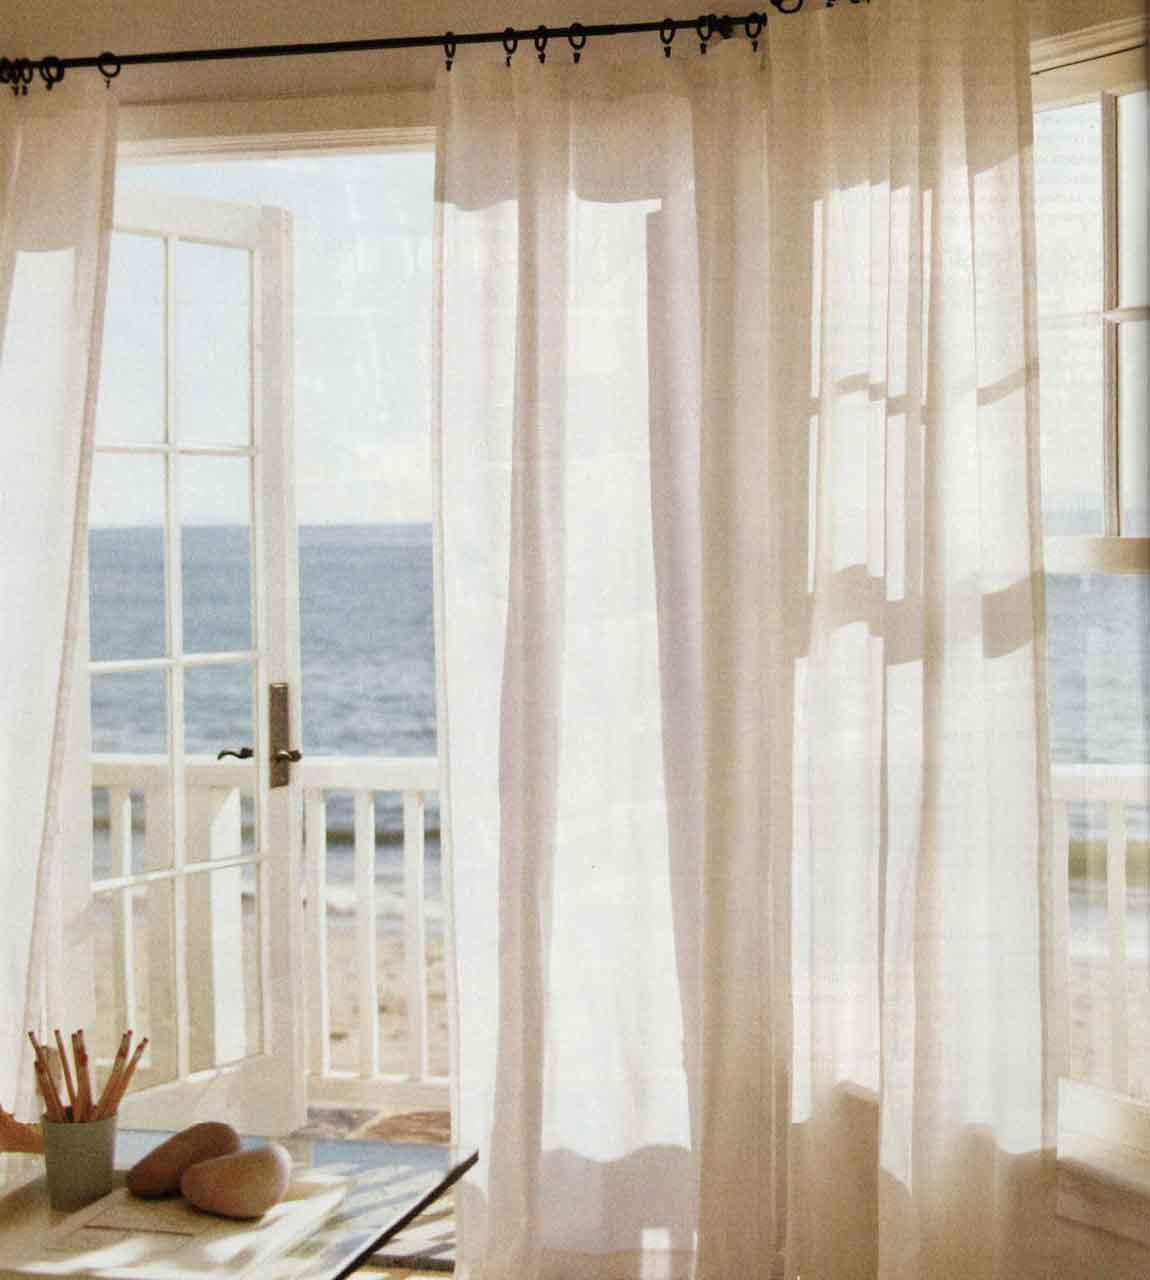 Best Window Sheers Treatments In 2020 With Images Beach House